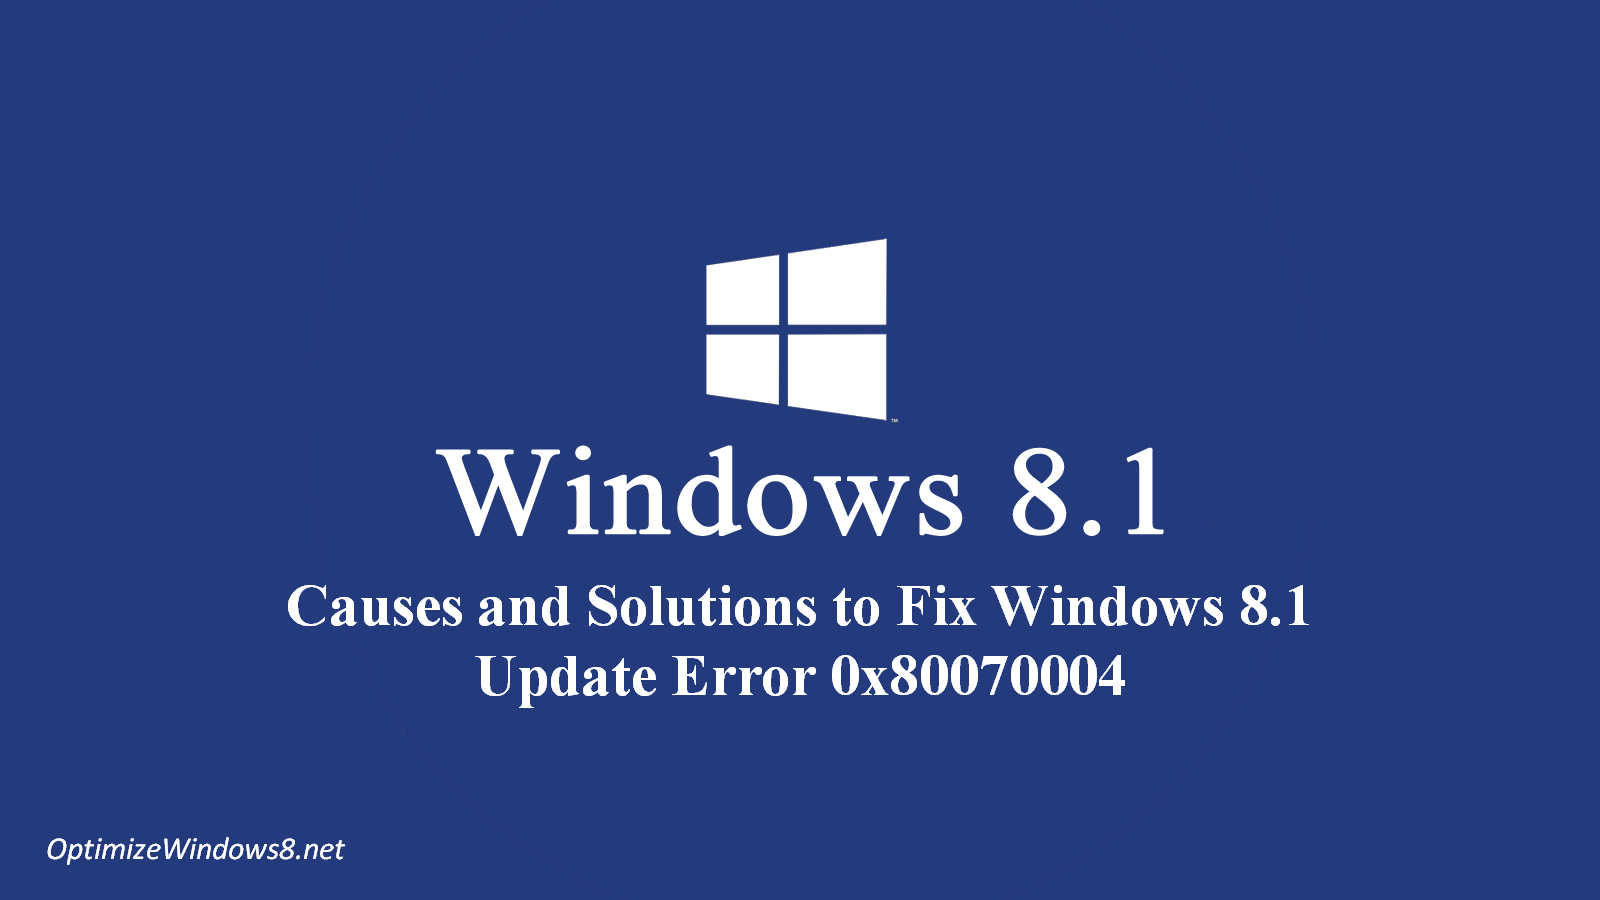 Know How to Resolve Windows 8.1 Error Code 0x80070004